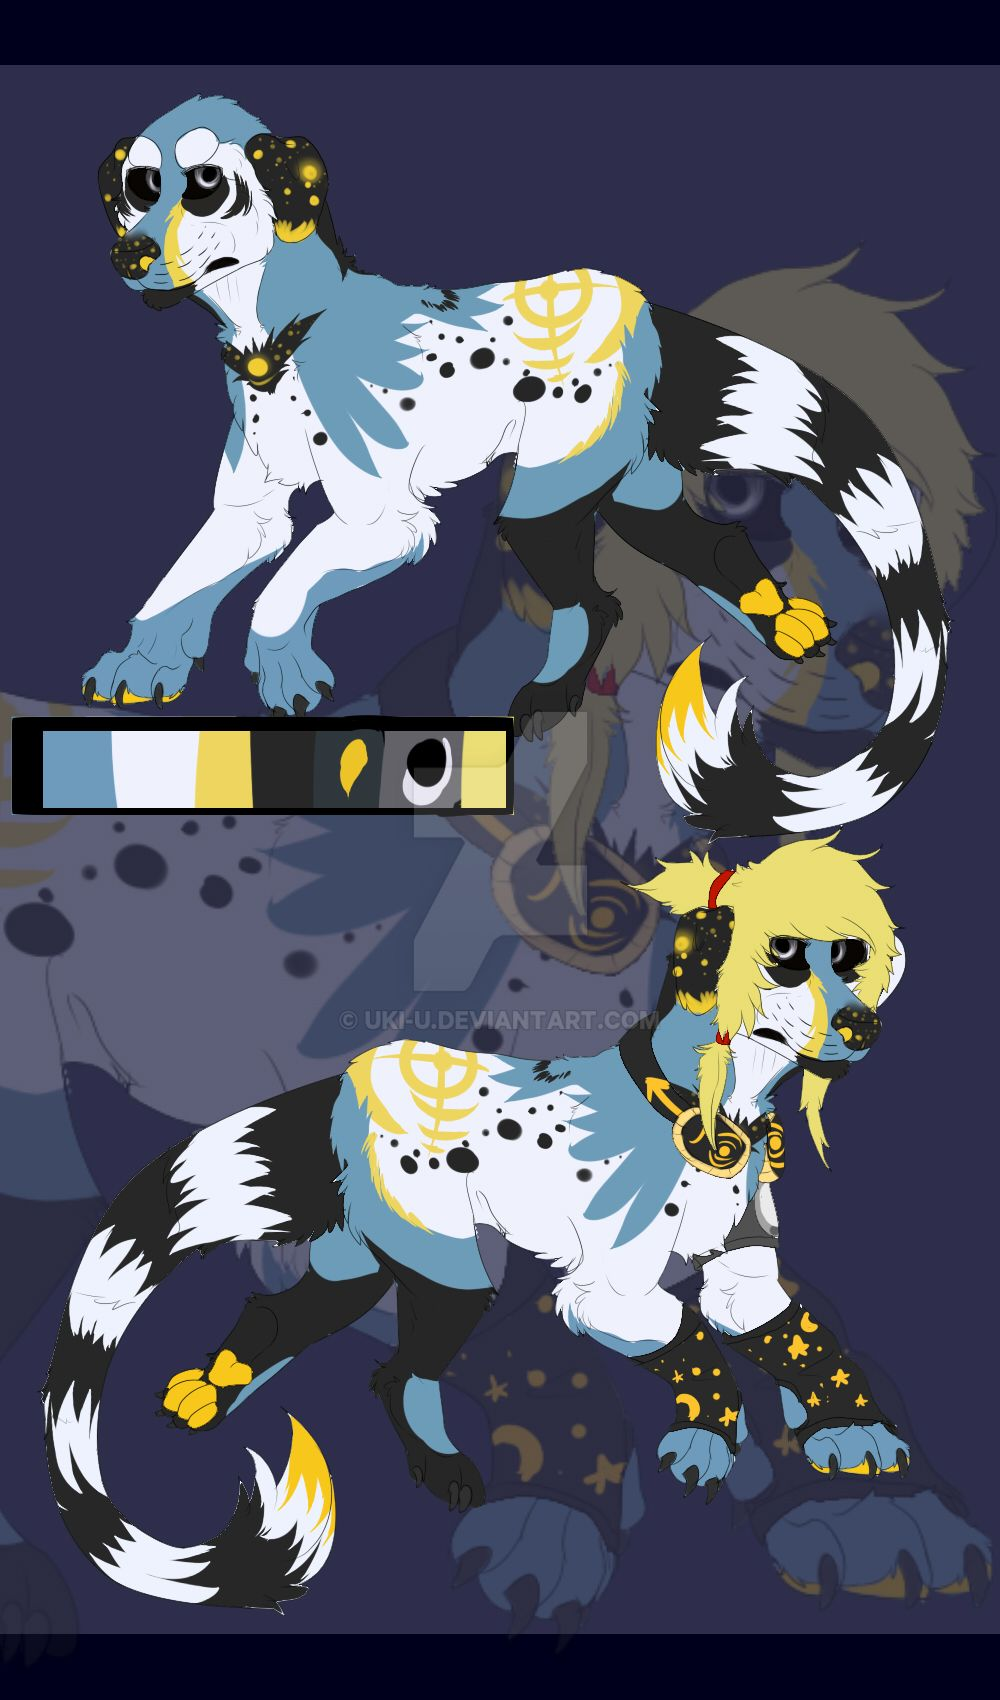 Design for Sale by Uki-U